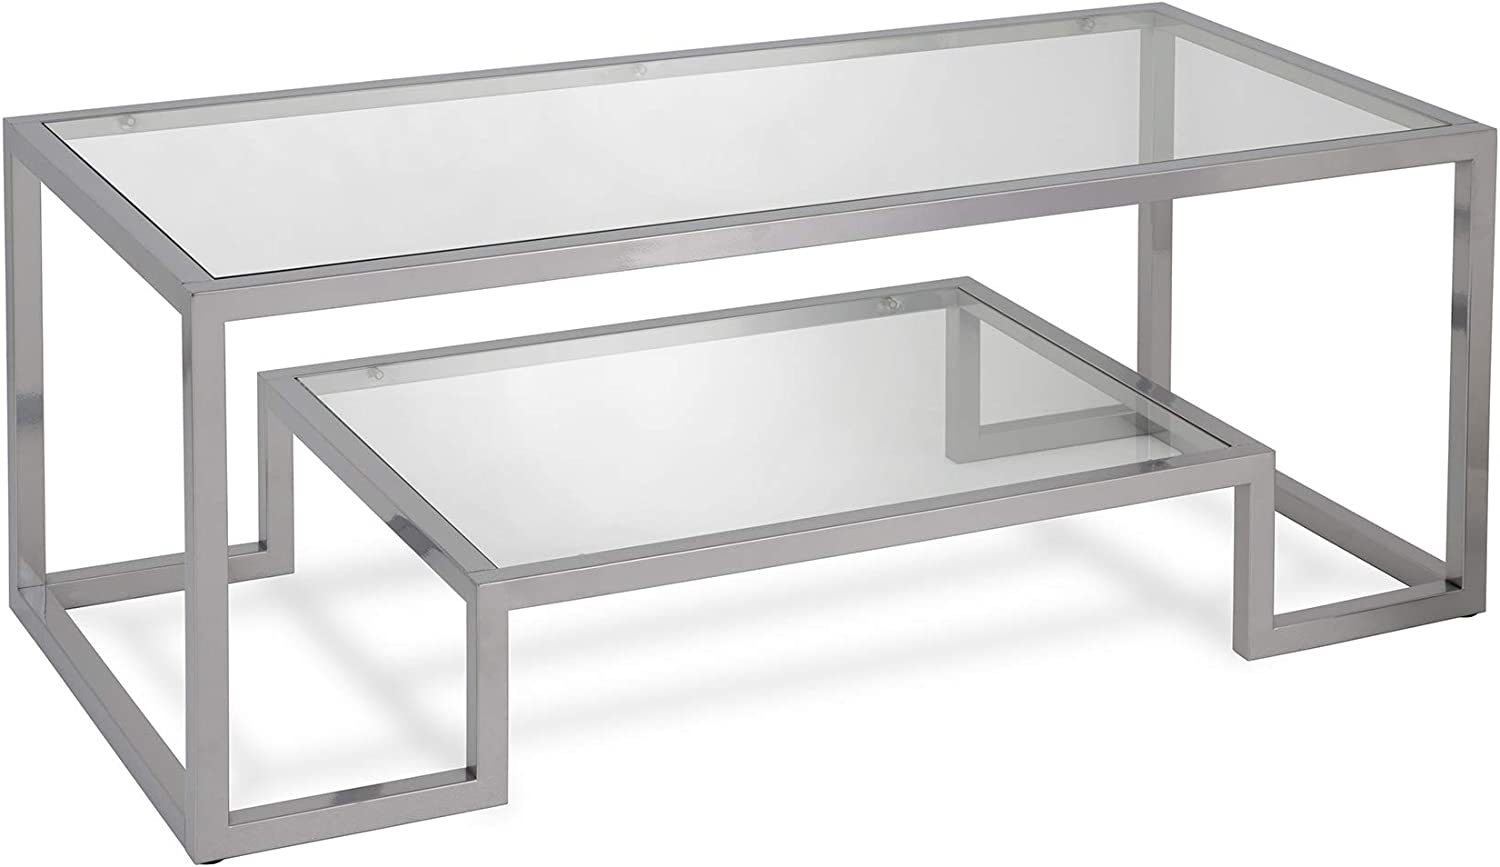 Henn&Hart Modern Geometric-Inspired Glass Coffee Table, One Size, Silver